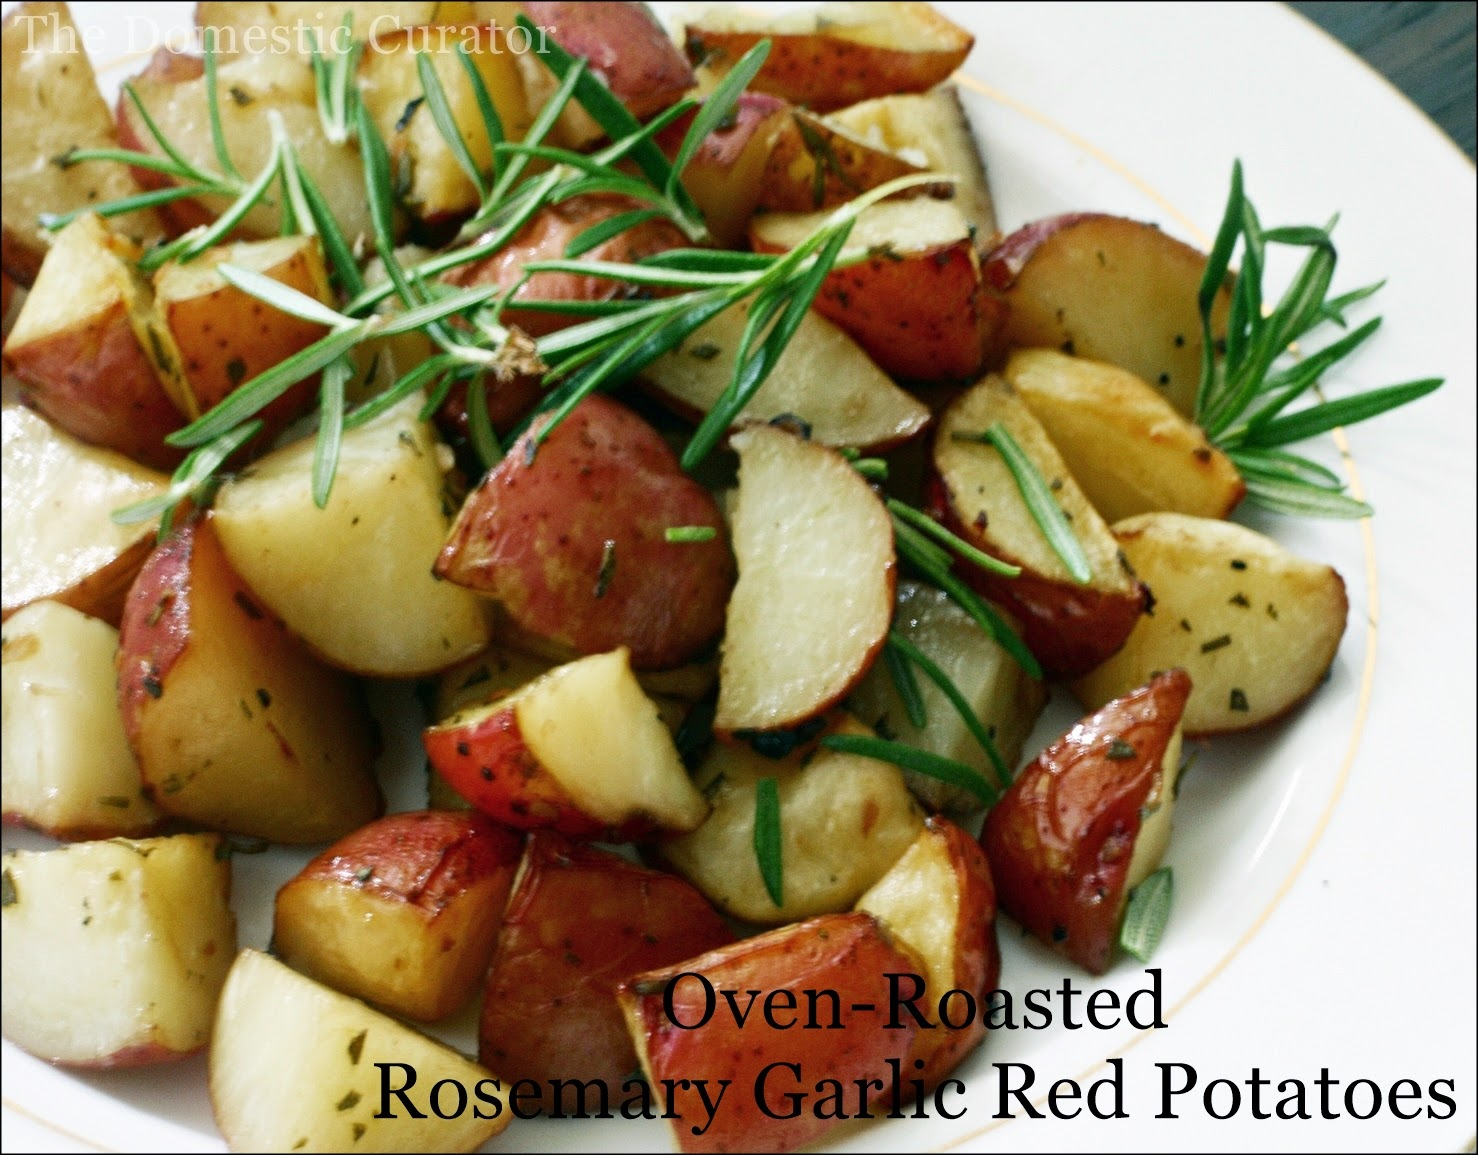 The Domestic Curator: Oven-Roasted Rosemary Garlic Red Potatoes